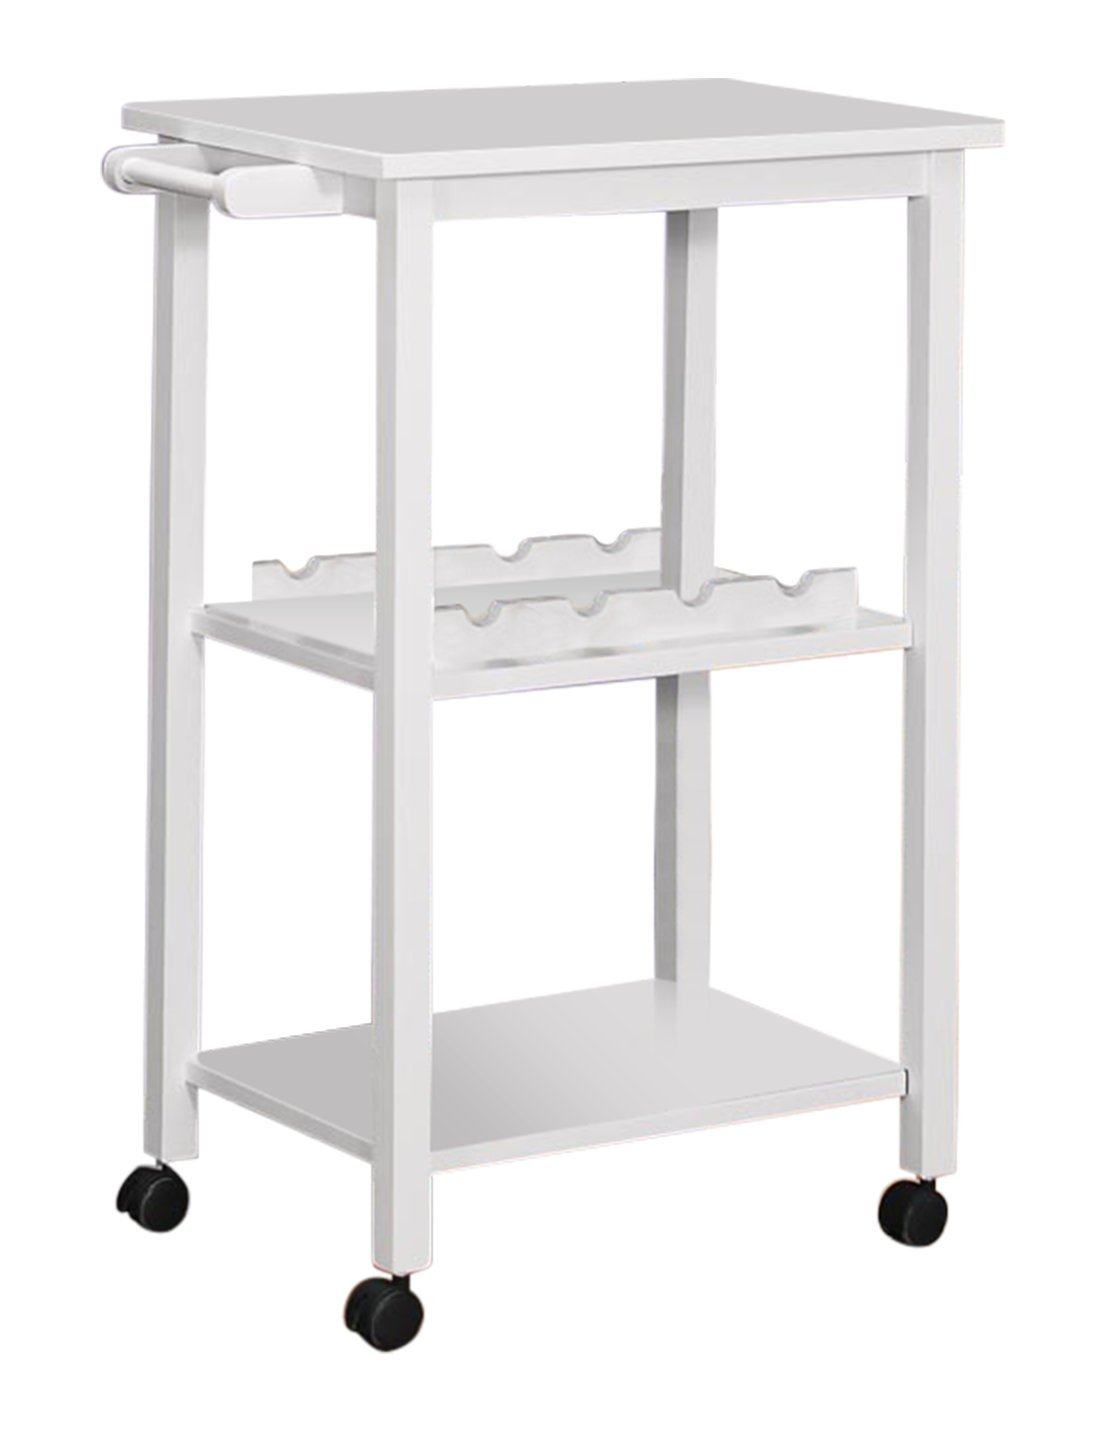 Kings Brand Furniture Wood Kitchen Storage Serving Cart Wine Rack, White